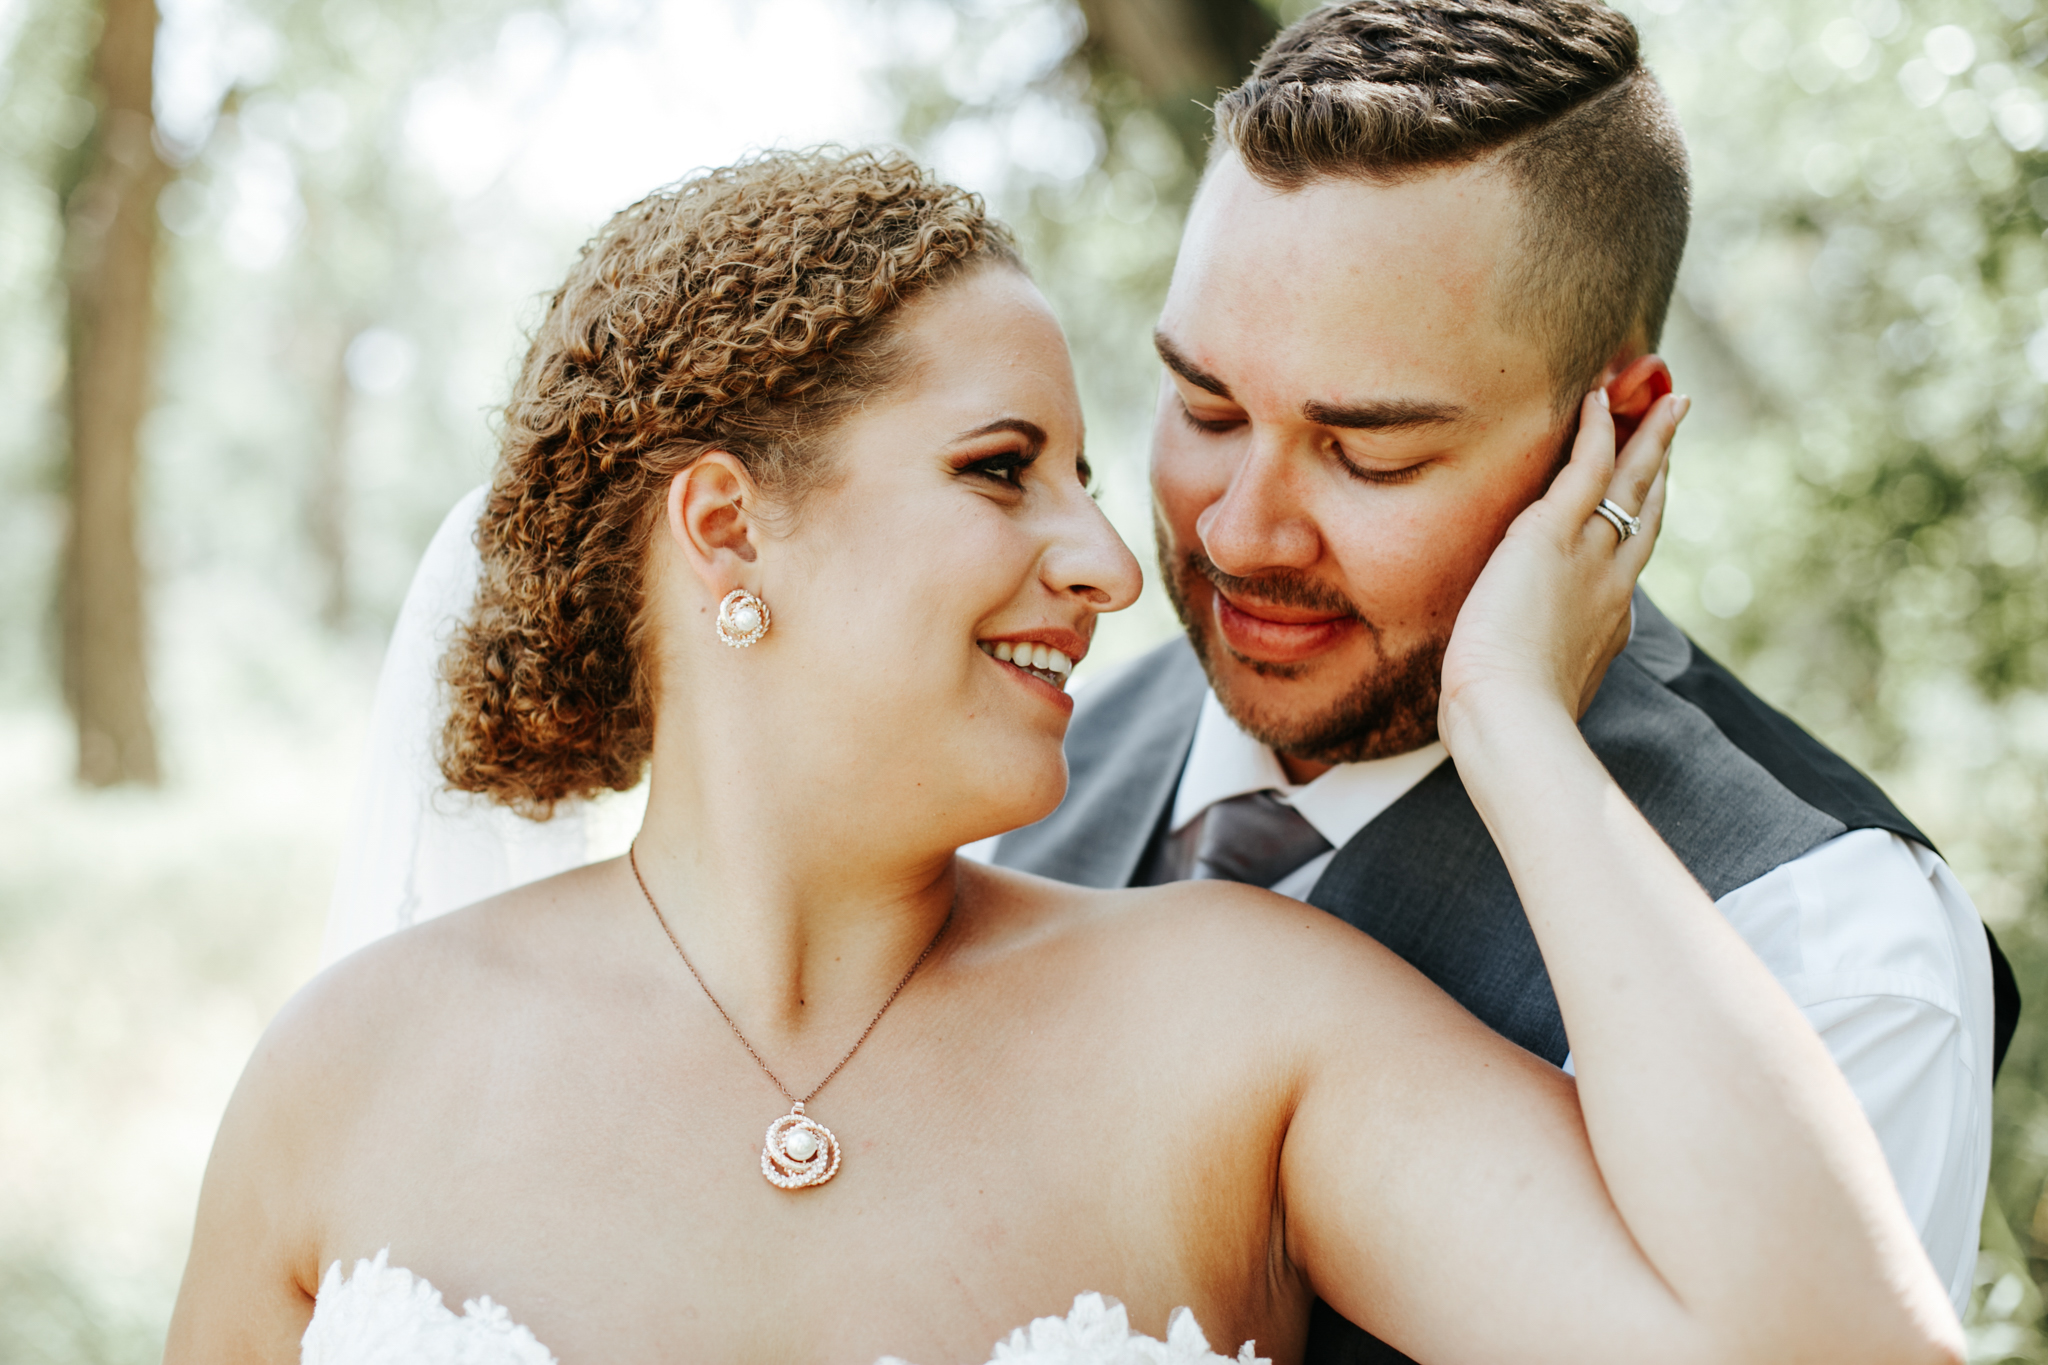 lethbridge-wedding-photographer-love-and-be-loved-photography-trent-danielle-galt-reception-picture-image-photo-118.jpg